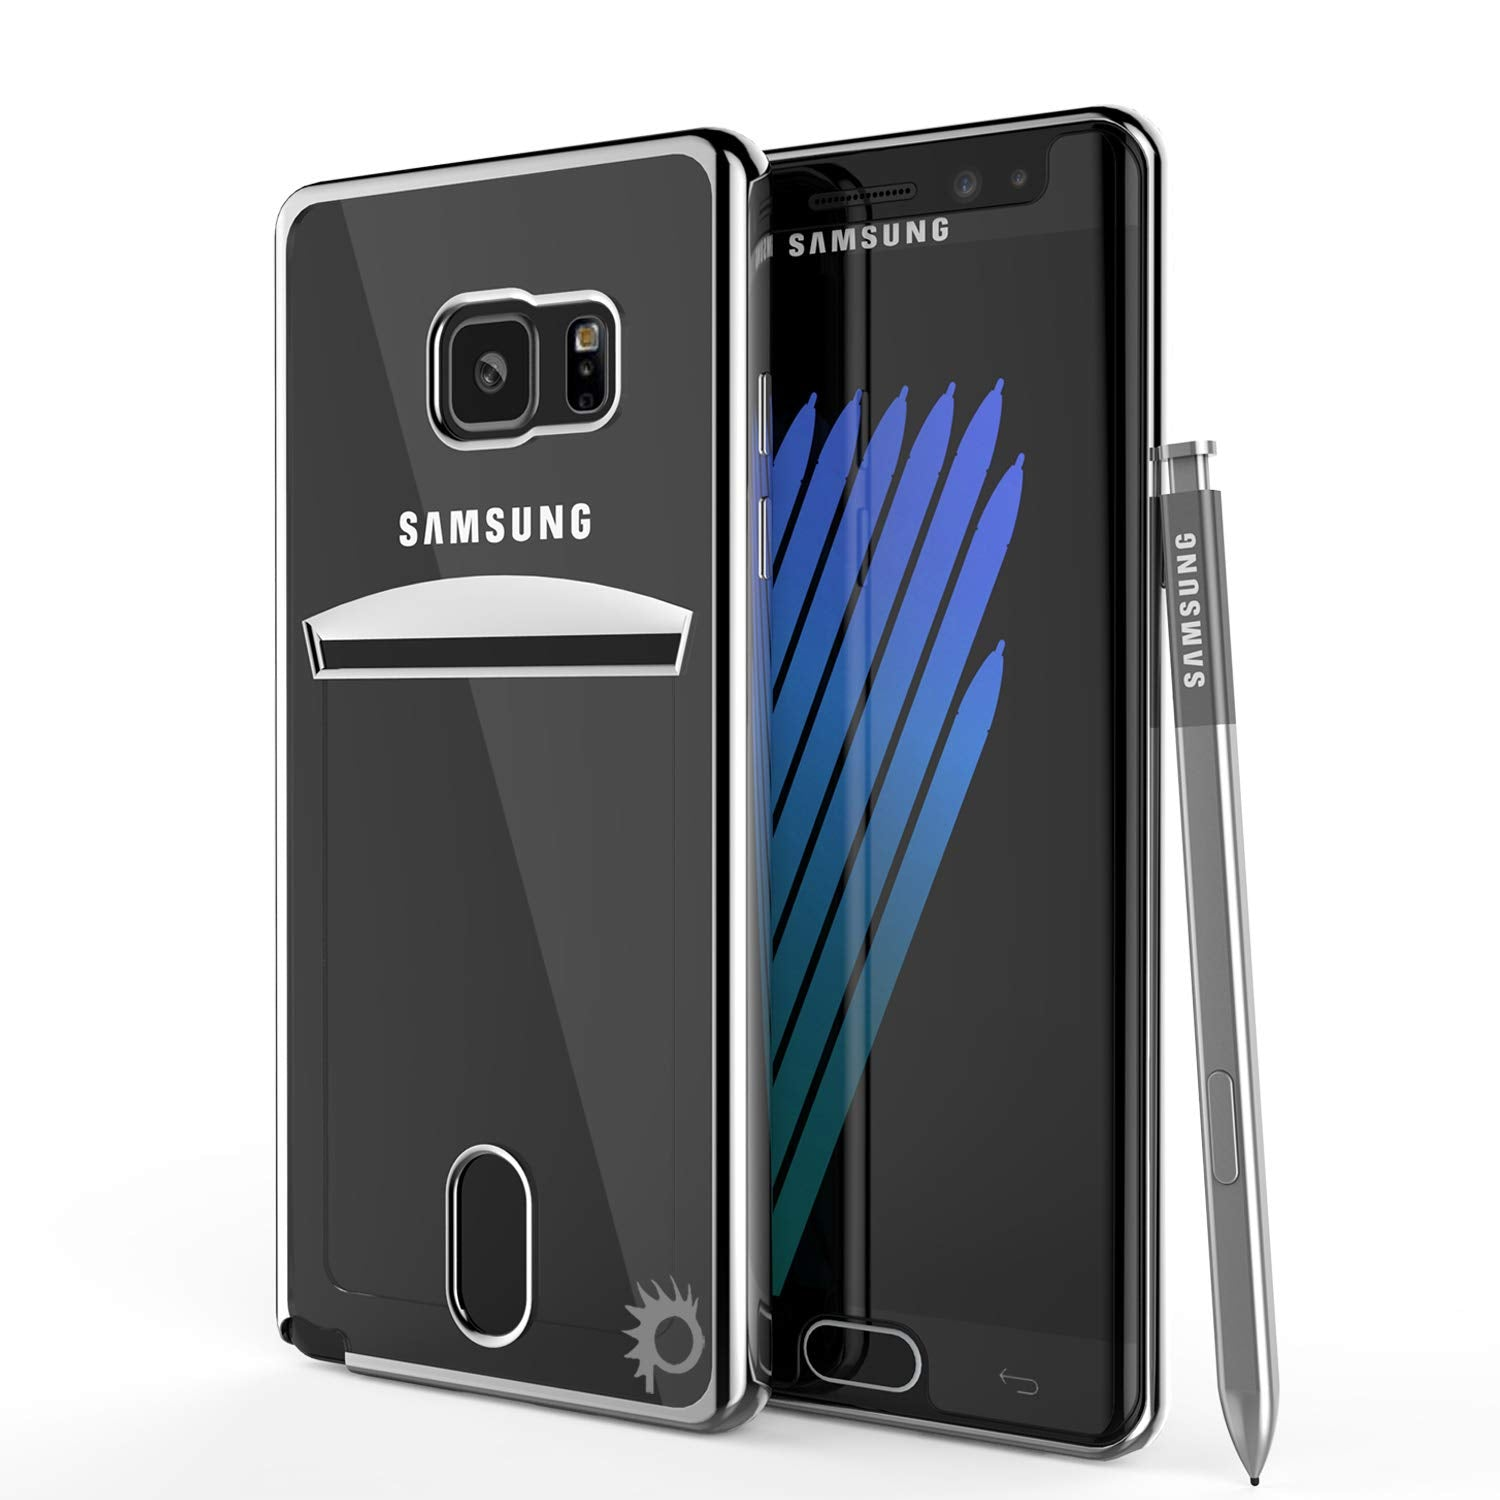 Galaxy Note FE Case, PUNKCASE® LUCID Silver Series | Card Slot | SHIELD Screen Protector | Ultra fit